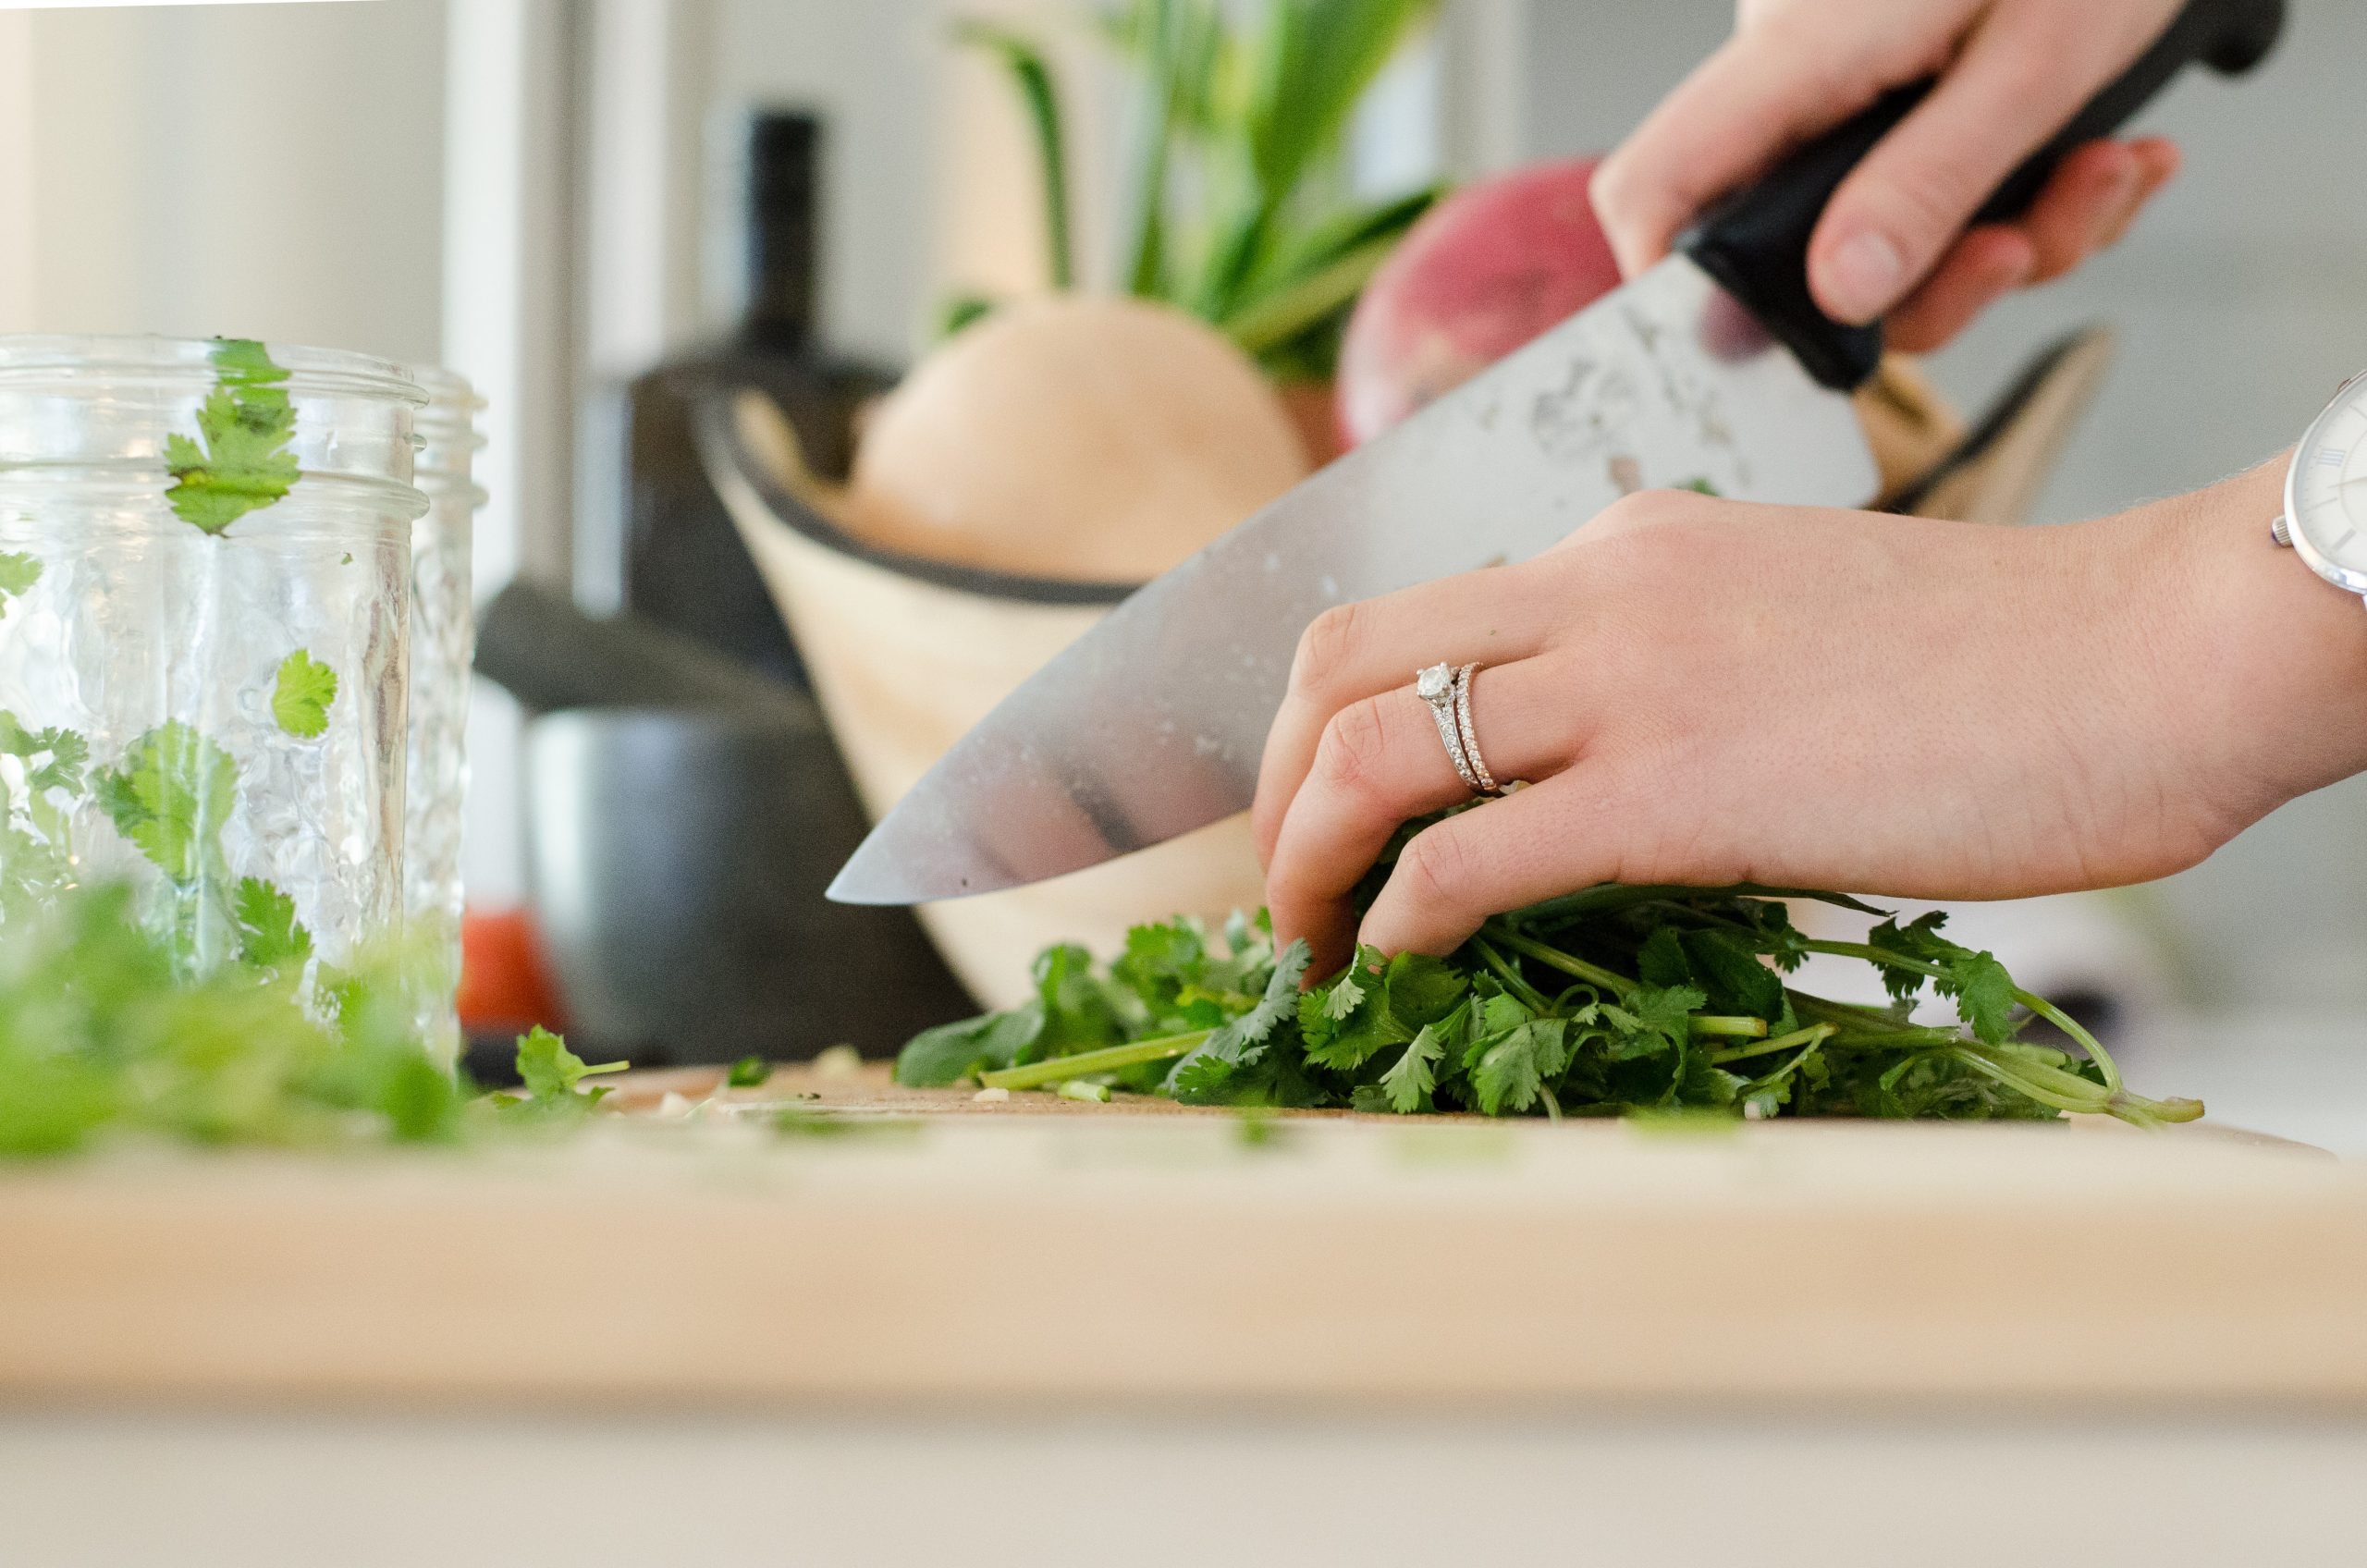 Lessons Learned from my Kitchen Knife Debacle